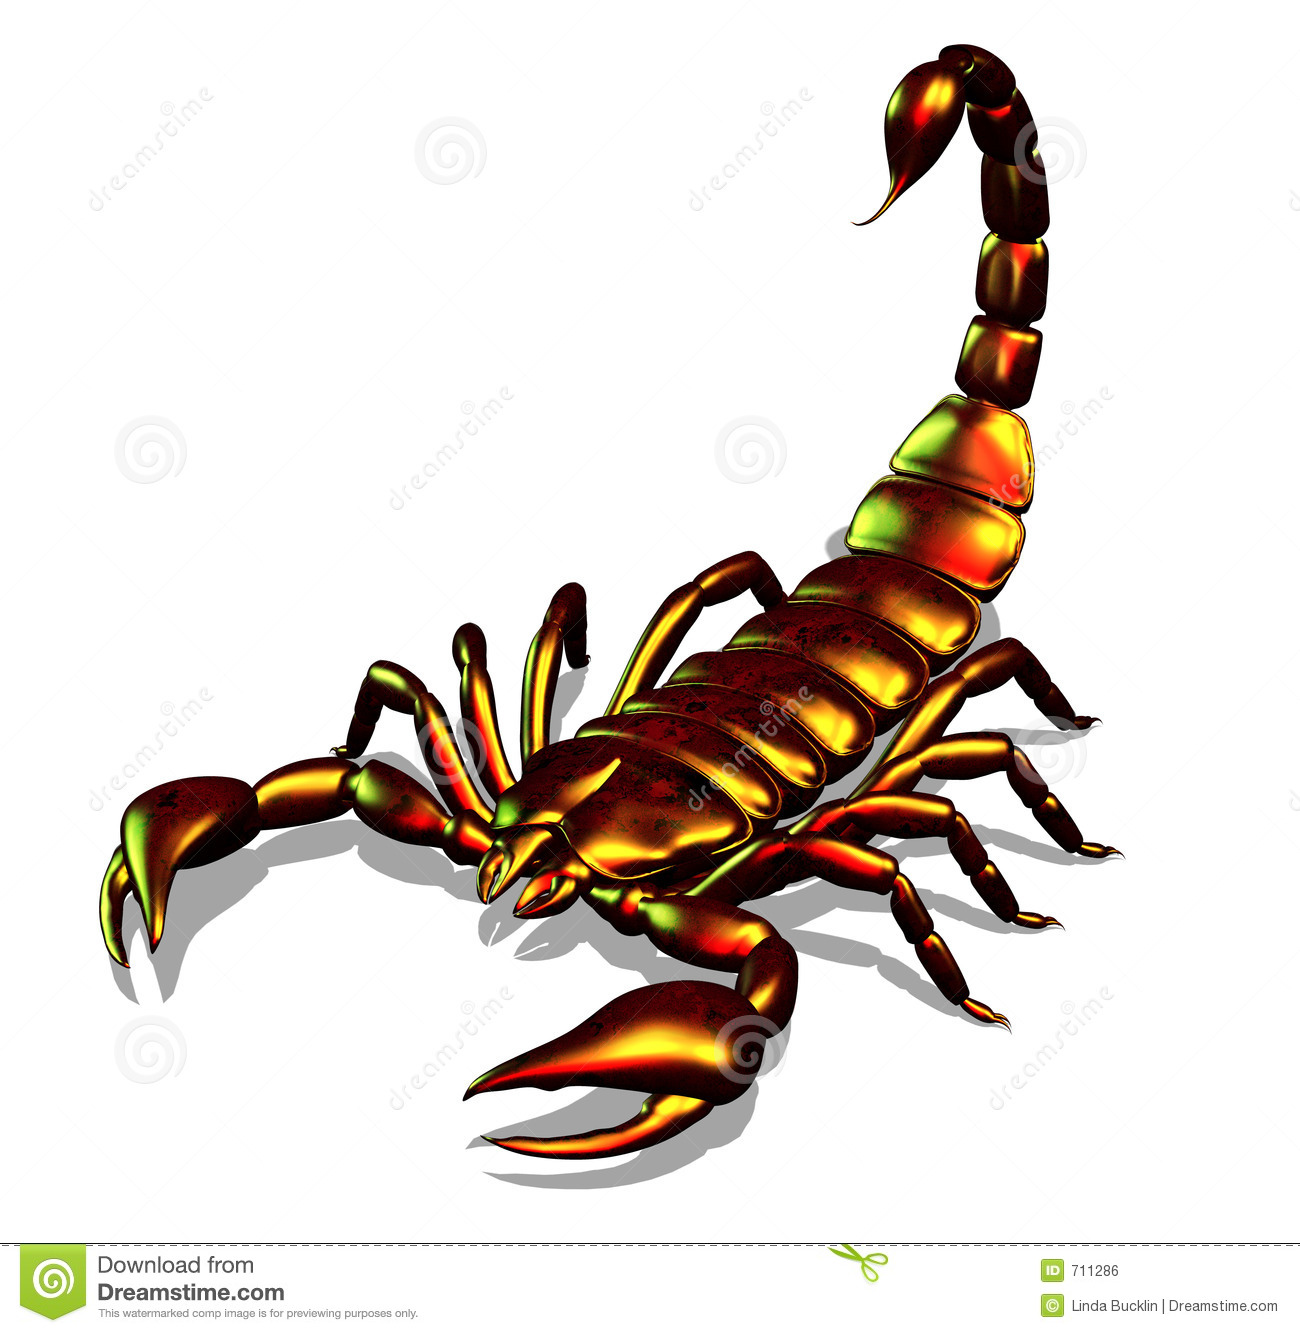 Clip Art Scorpion Clip Art scorpion stock illustrations 2989 metallic royalty free image